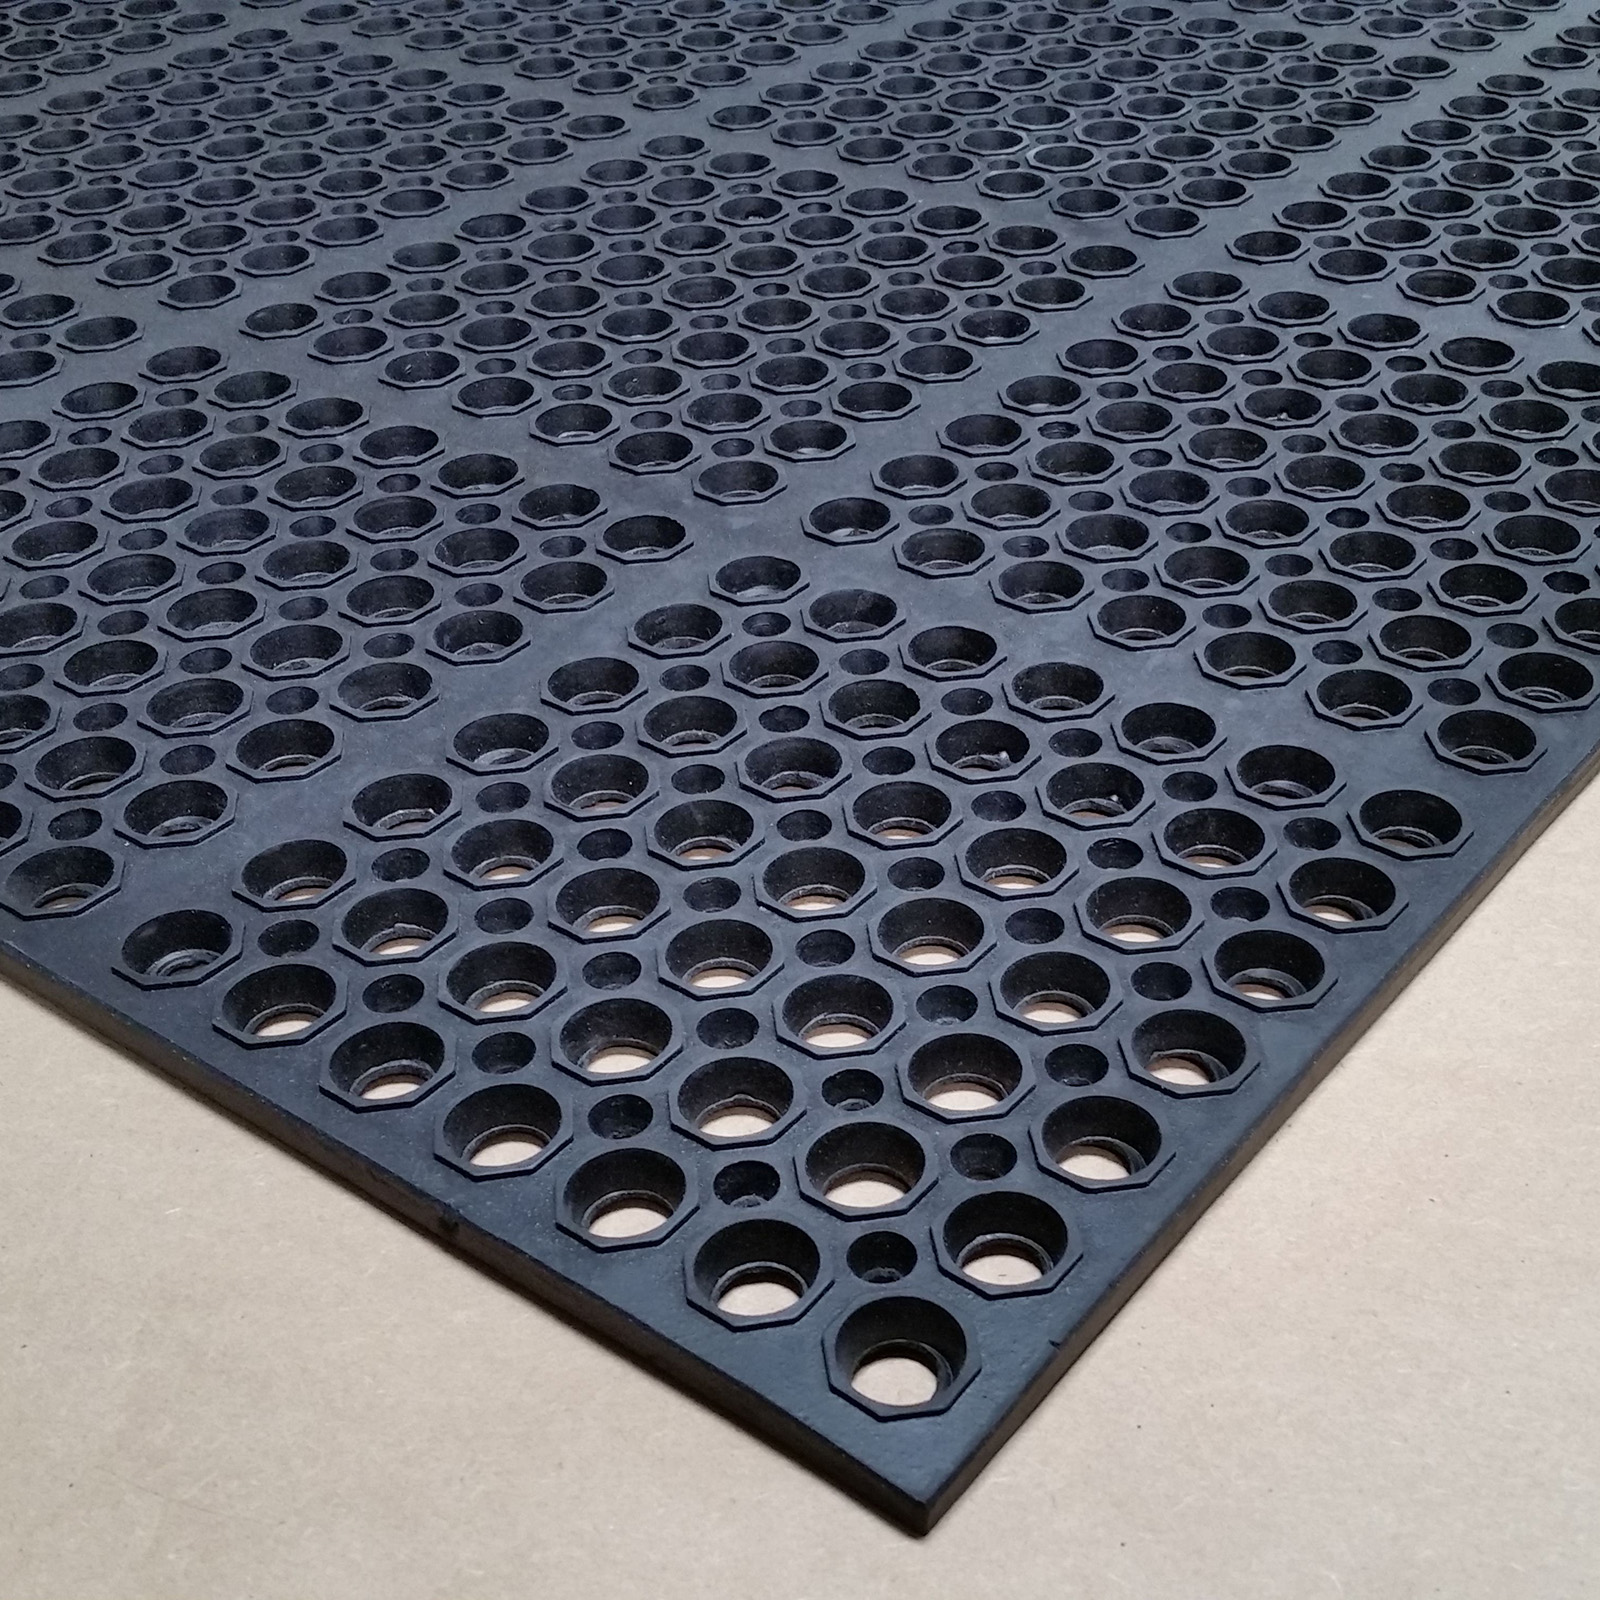 Cactus Mat 3520-C3 floor mat, anti-fatigue